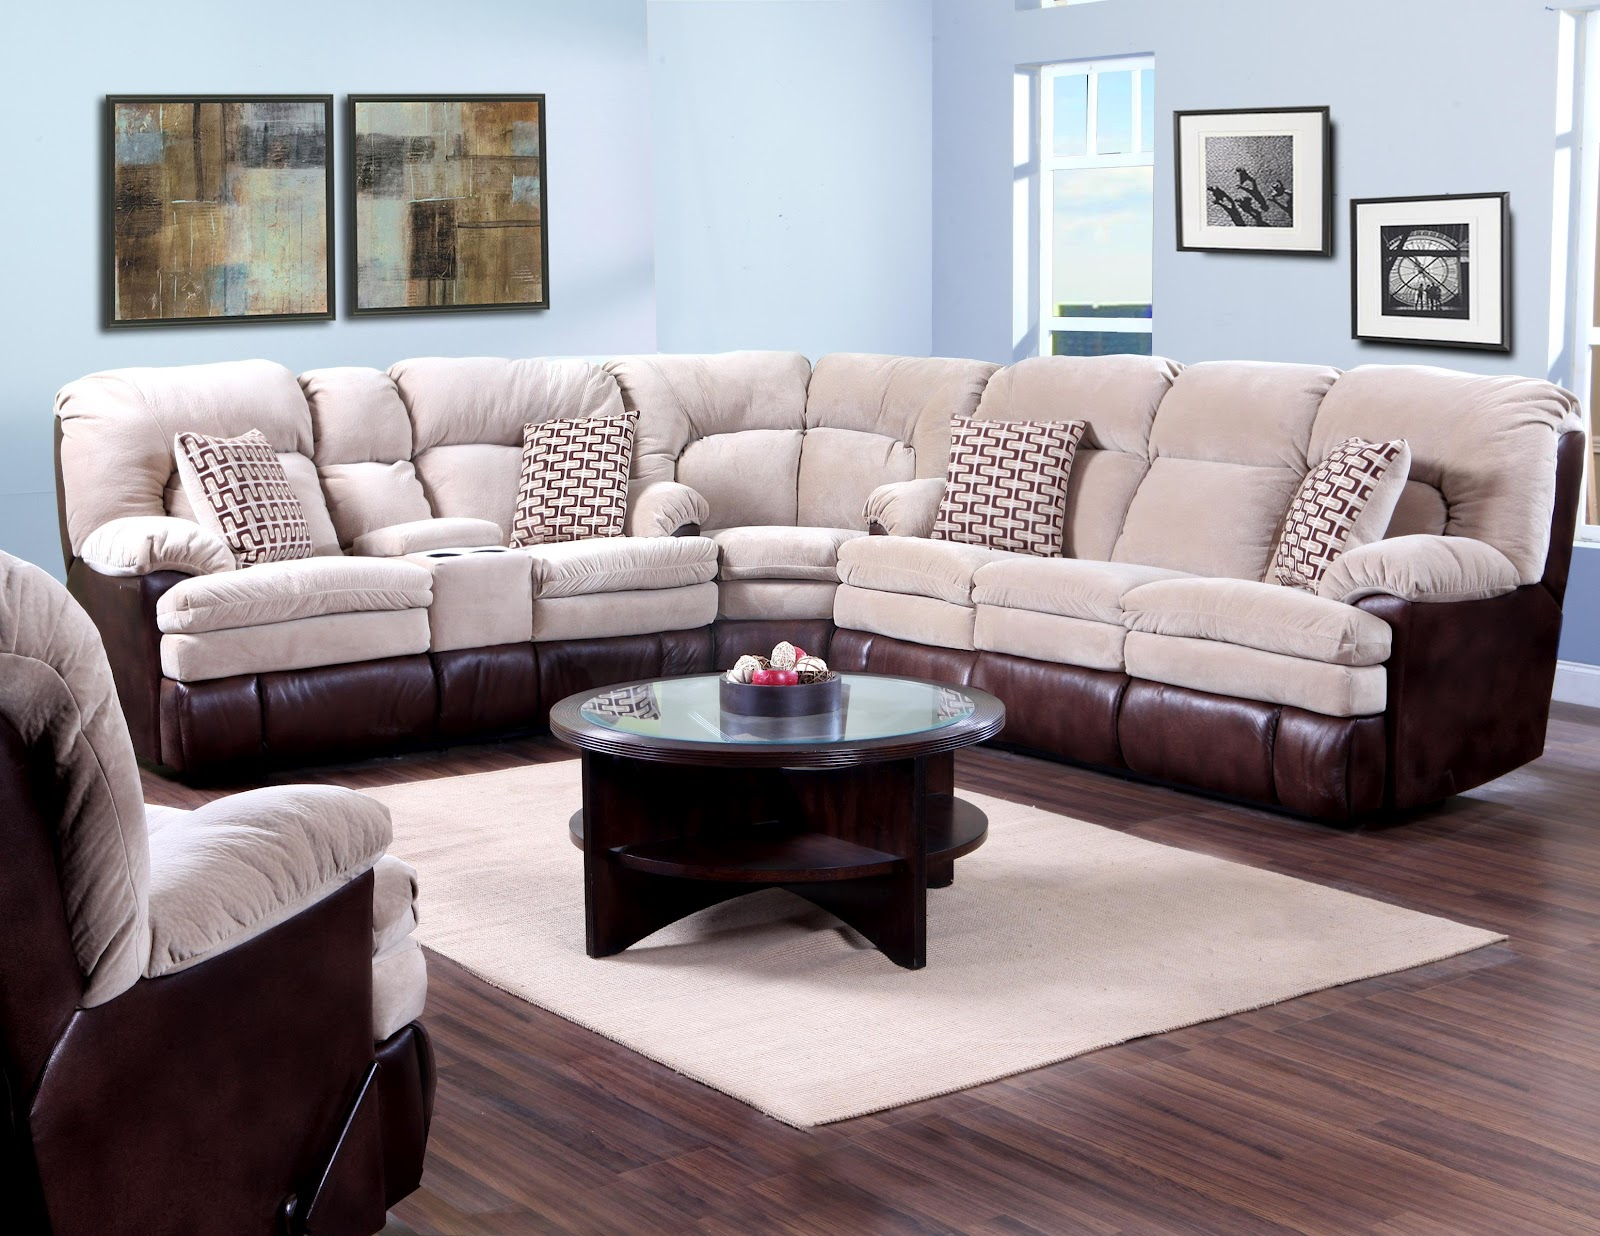 Living room furniture knoxville tn for Living room furniture configurations